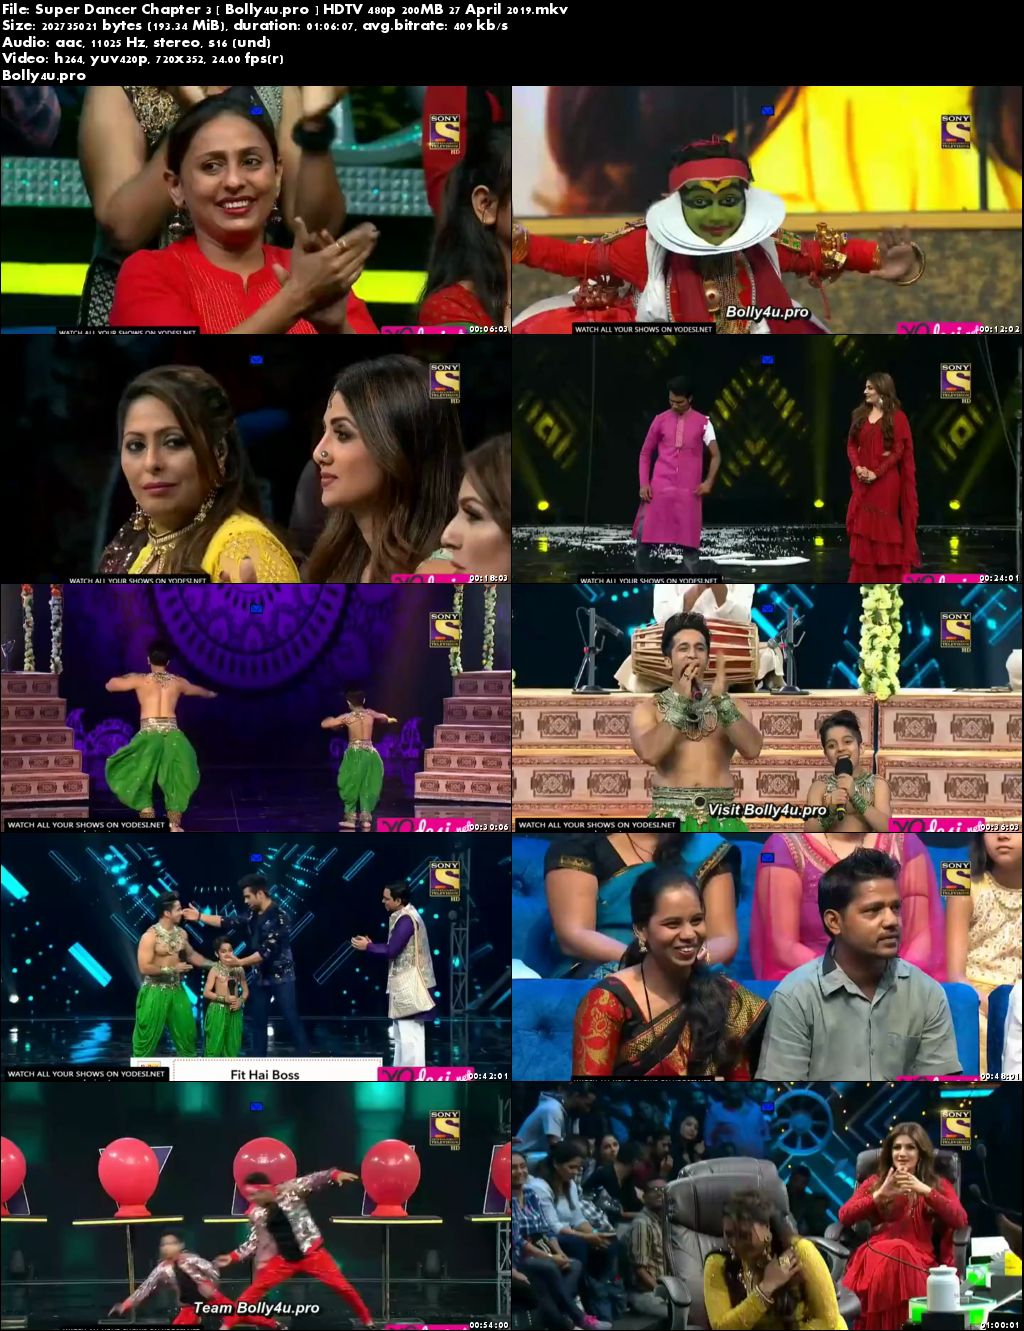 Super Dancer Chapter 3 HDTV 480p 200MB 27 April 2019 Download